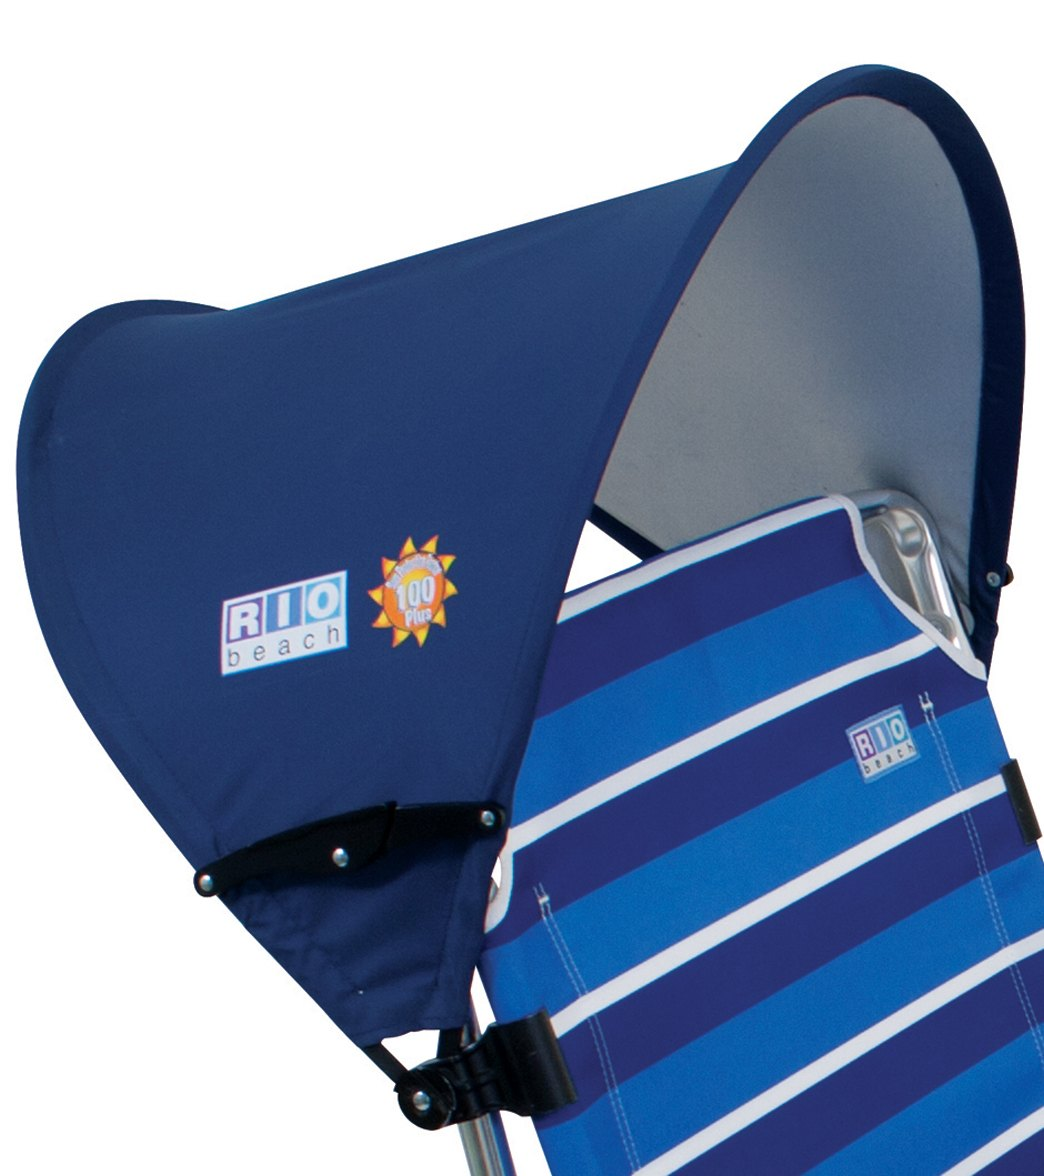 Clamp On Chair Umbrella Rio Brands My Canopy For Beach Chairs At Swimoutlet